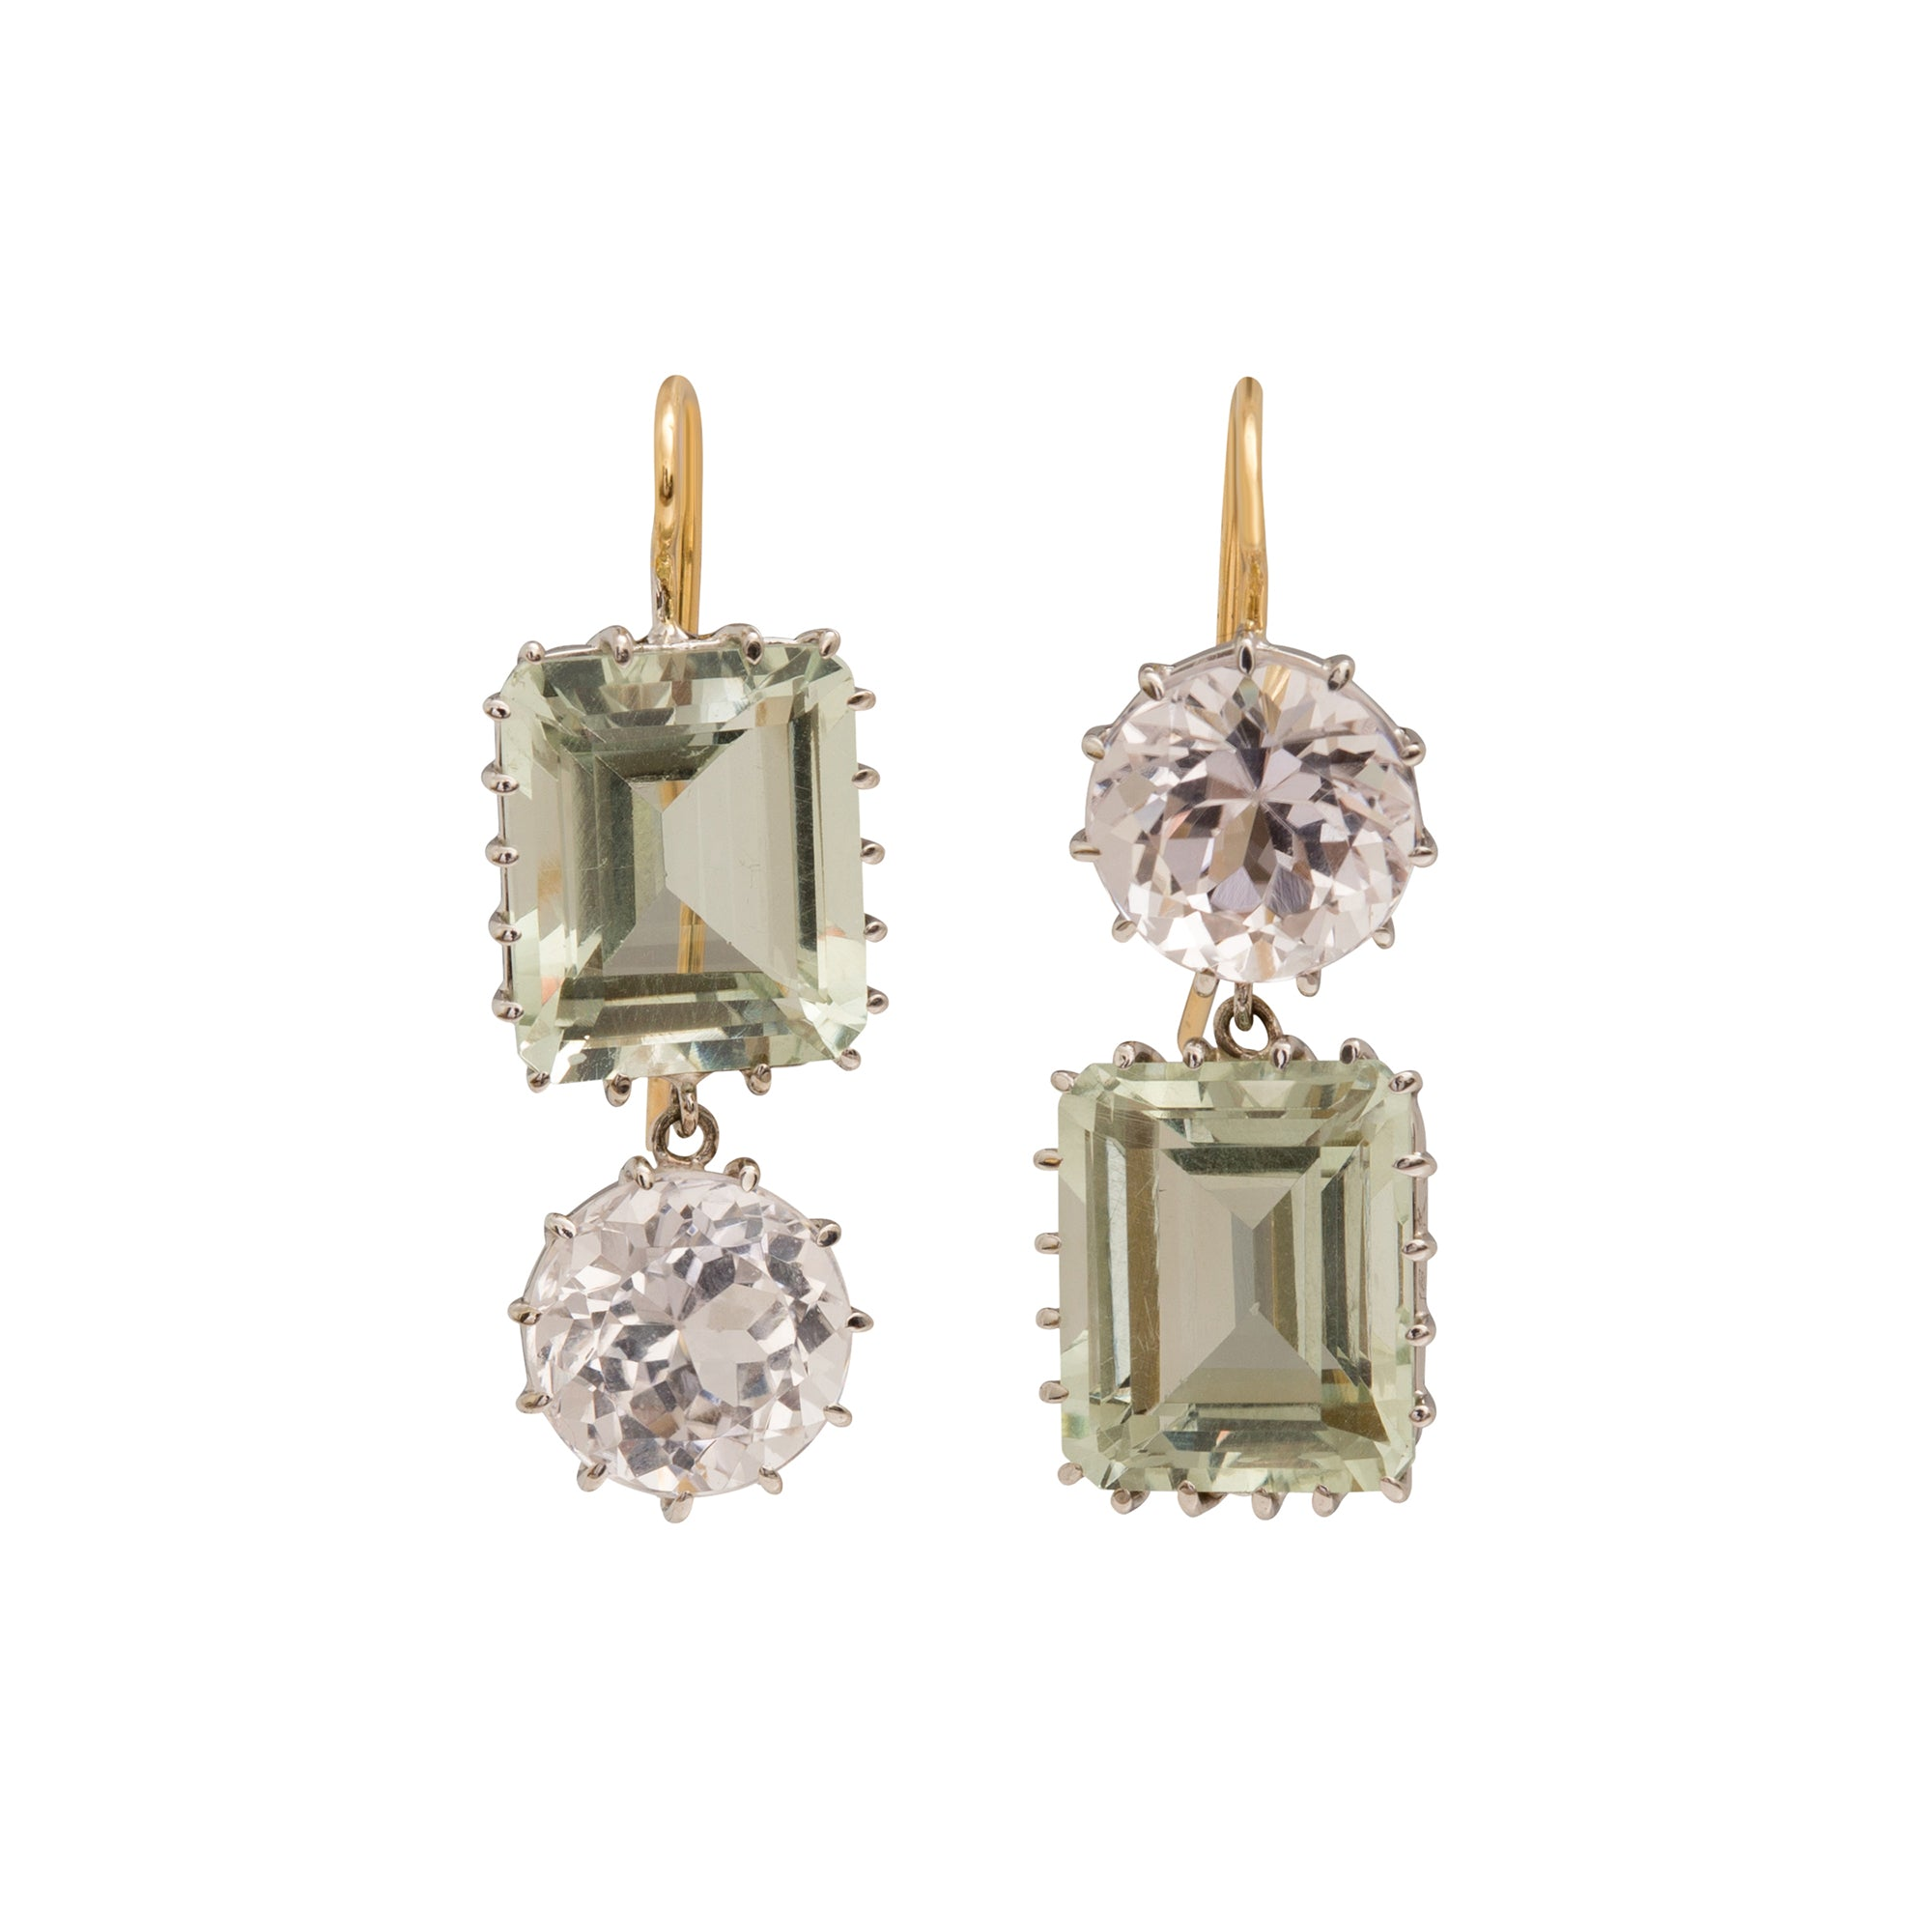 Feldspar and Synthetic Diamond Earrings by Renee Lewis for Broken English Jewelry